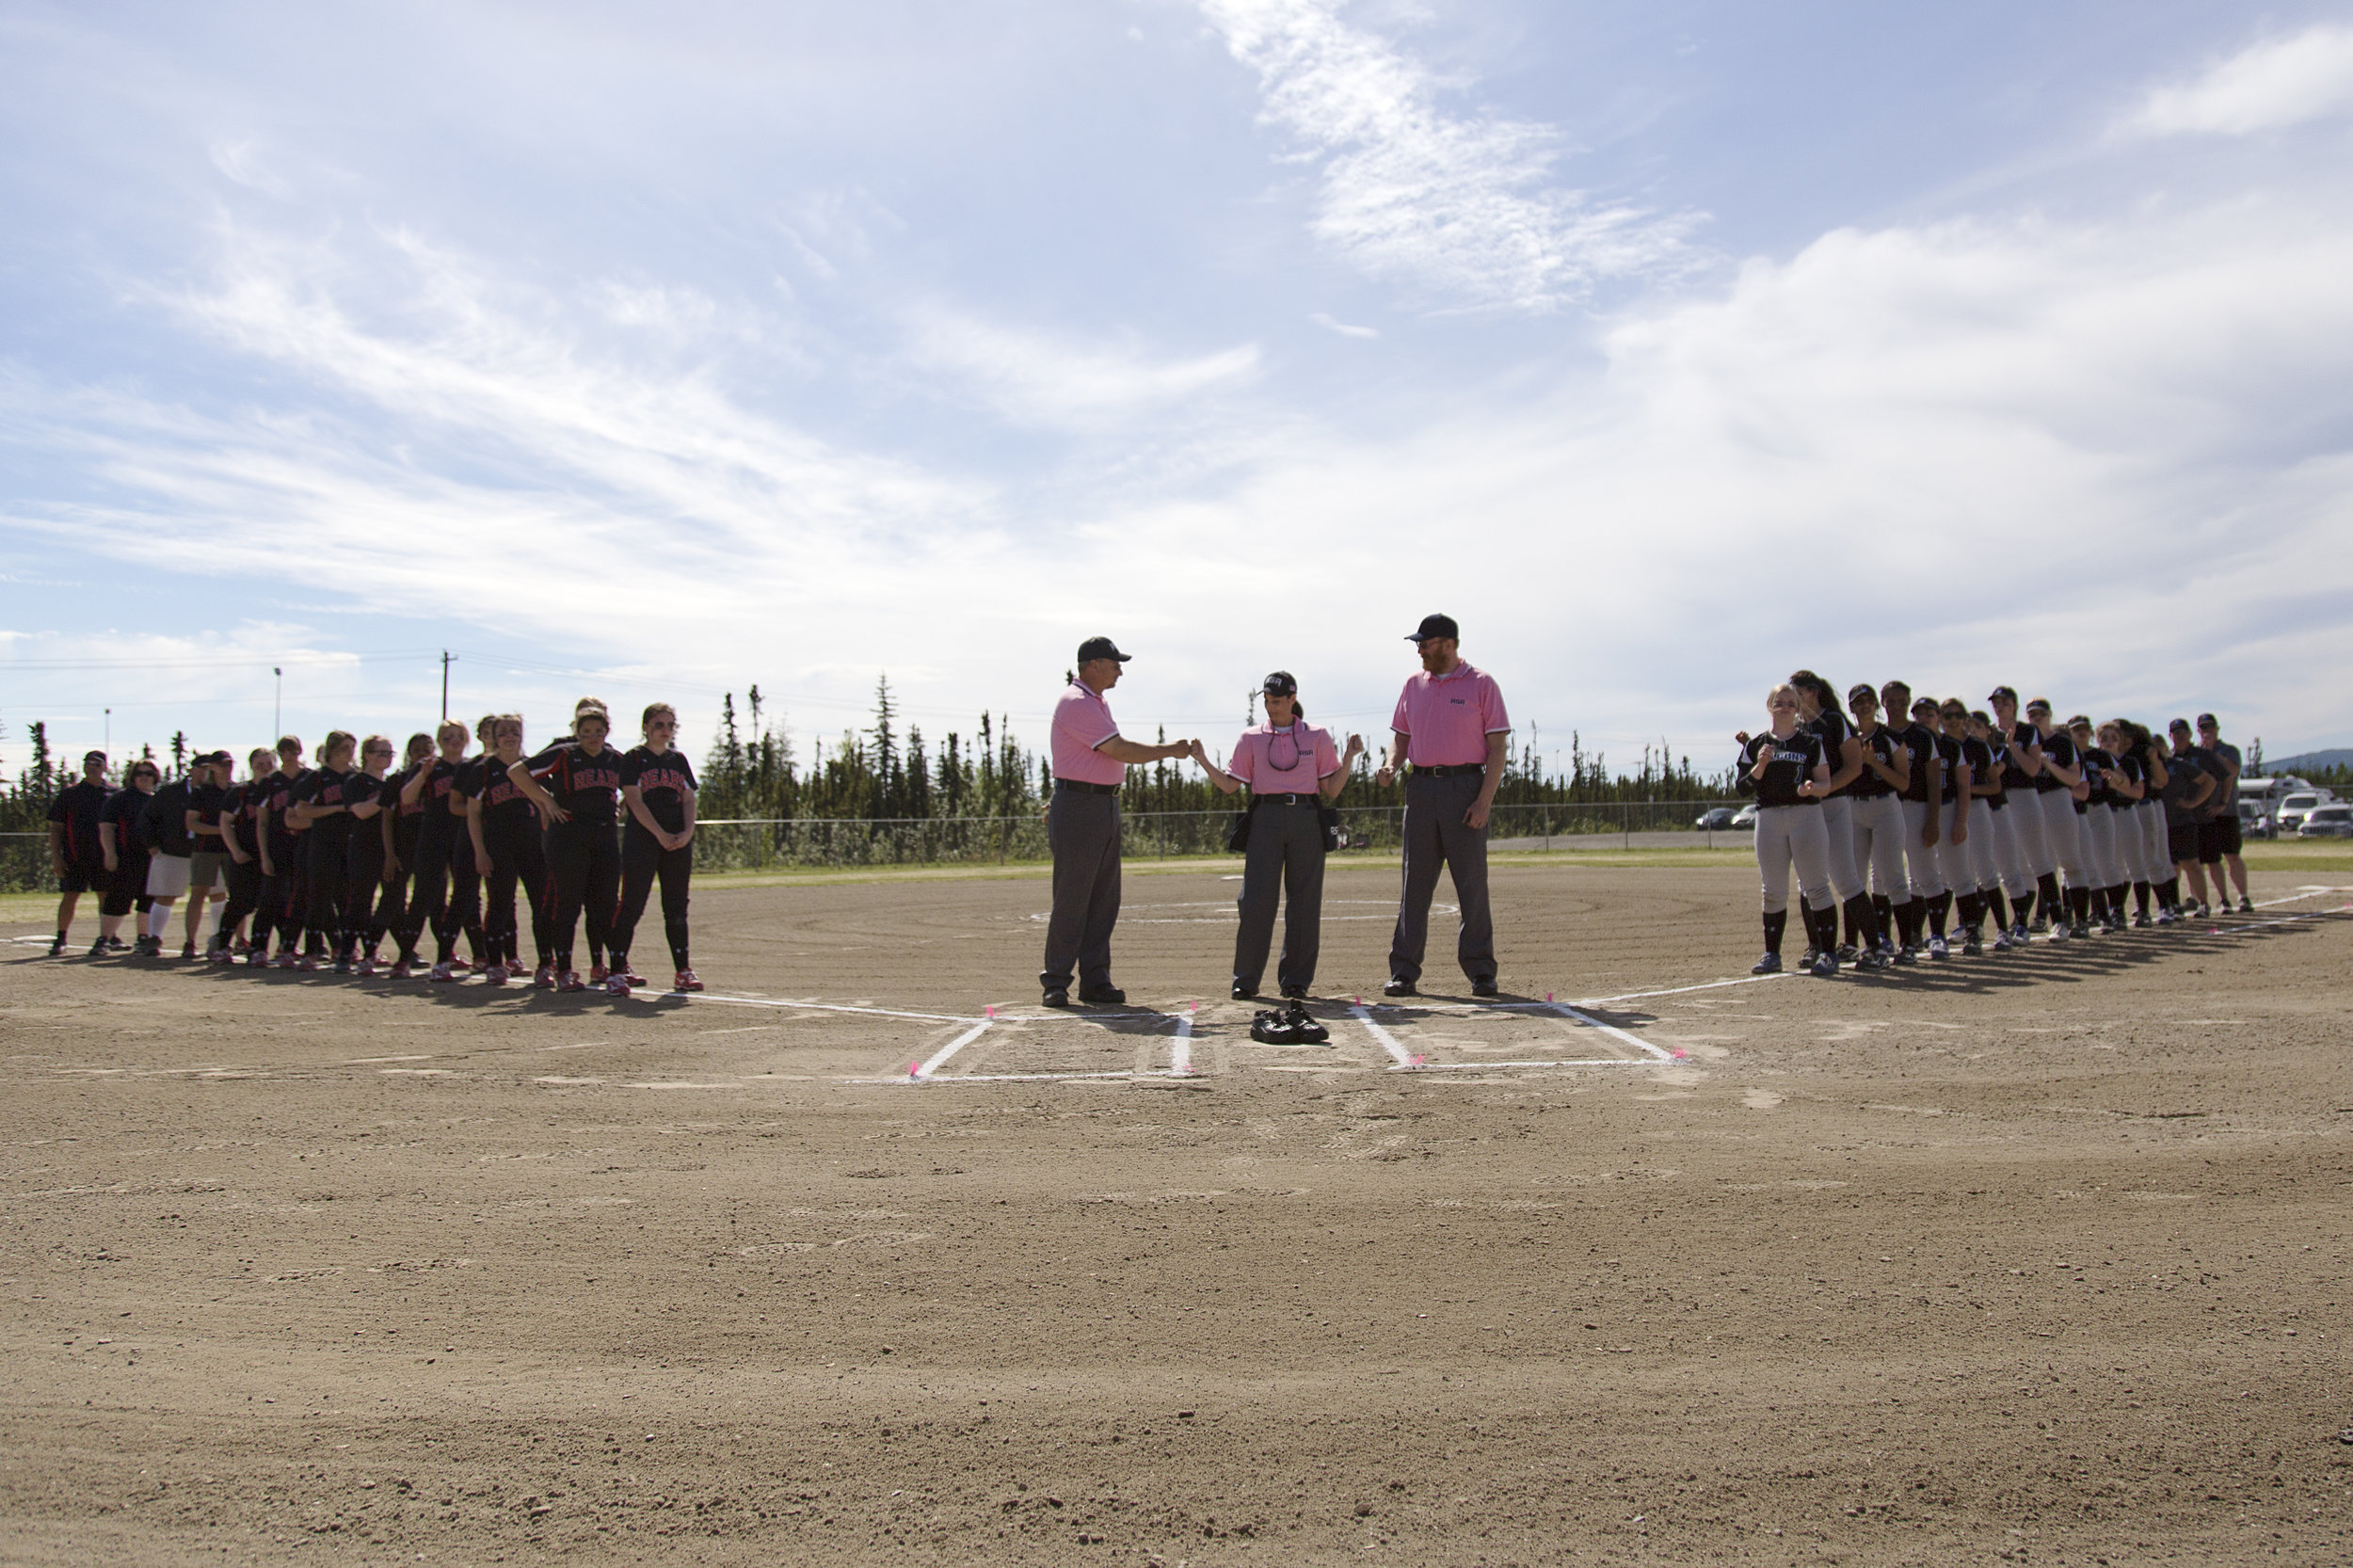 Juneau Douglas softball team and coaches (left) and the Thunder Mountain softball team and coaches (right) and umpires (center) line up before the start of the final game for the 2017 State Championship title on Saturday, June 3rd in the South Davis Park Complex in Fairbanks, AK. Sarah Manriquez/ Juneau Empire